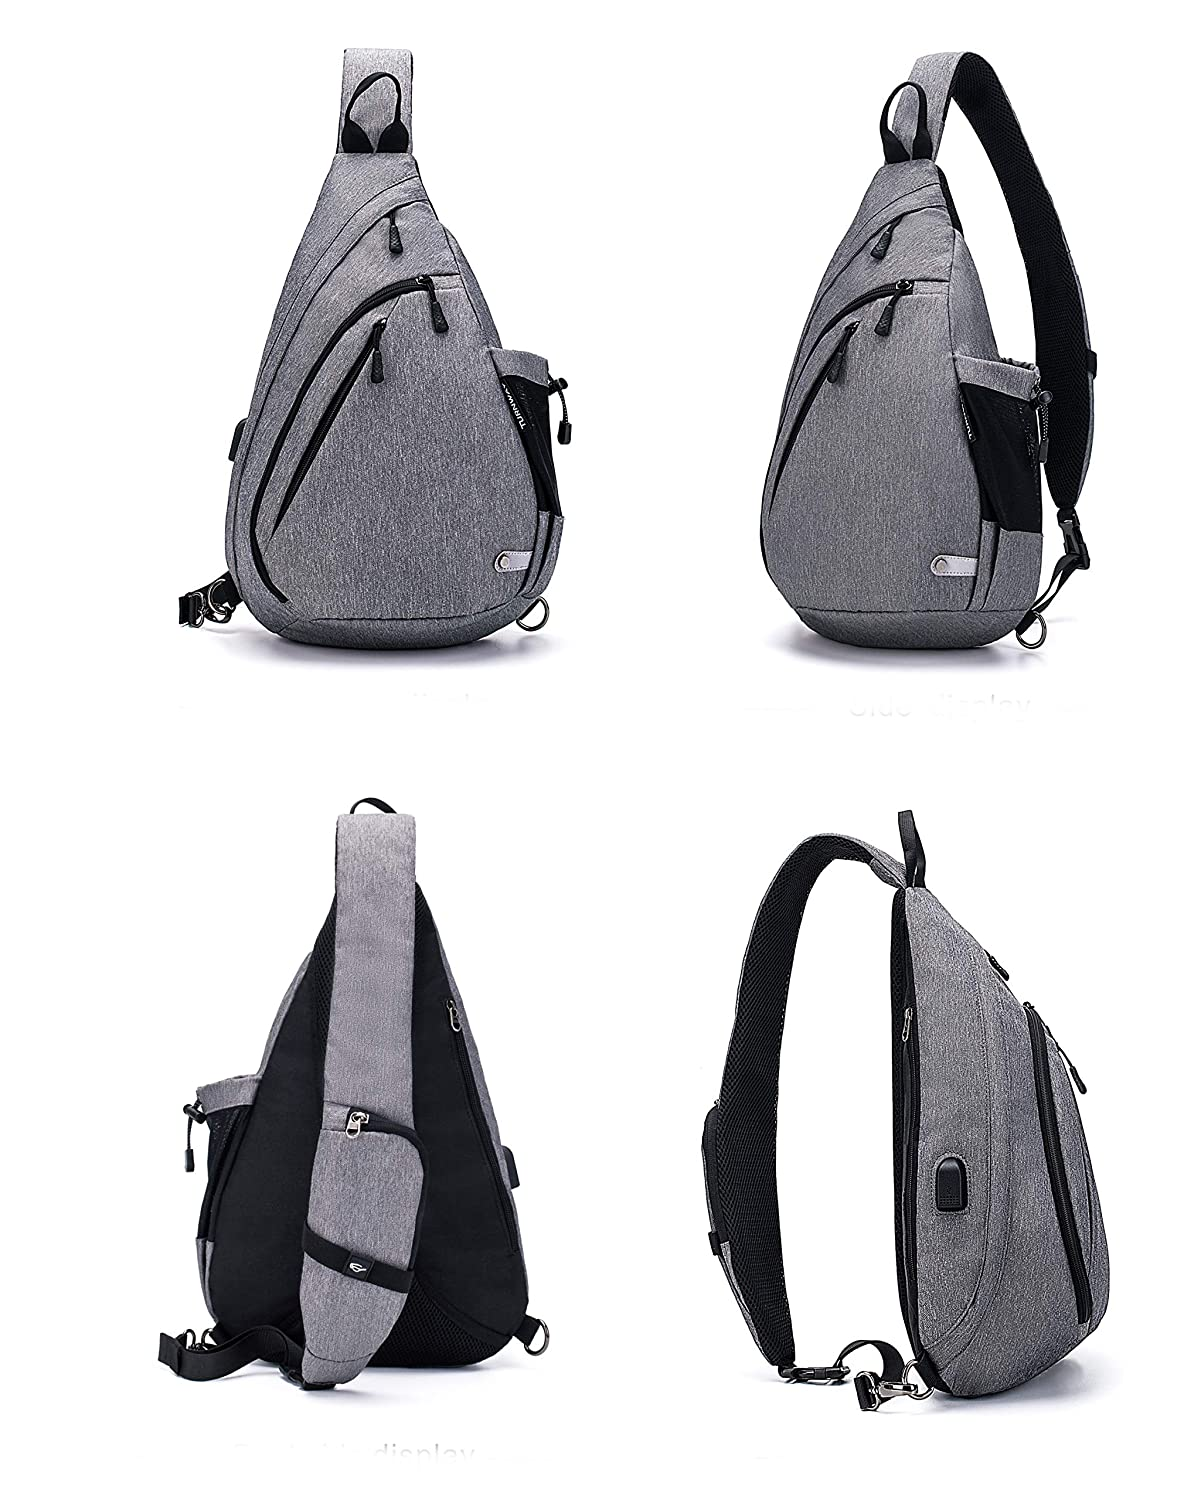 TurnWay Water-Proof Sling Backpack Crossbody Bag Shoulder Bag for Travel, Hiking, Cycling, Camping for Women Men Gray